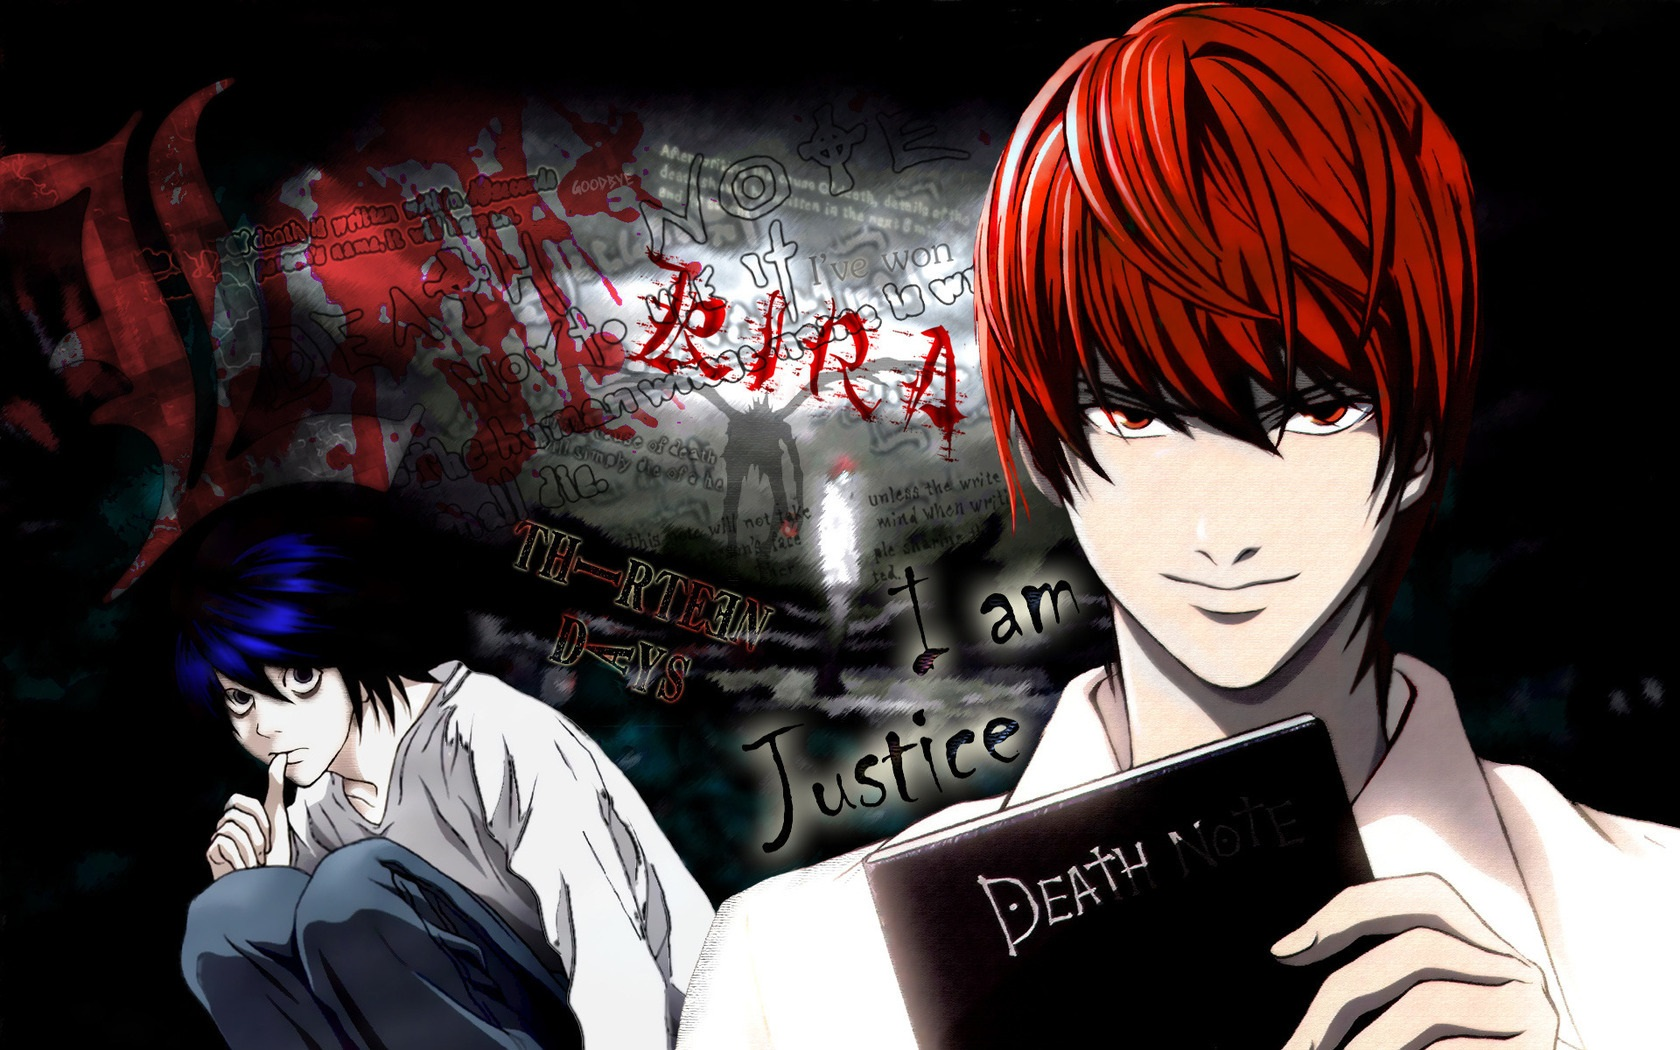 Top 20 Most Psychological Anime haruhichan.com Death Note